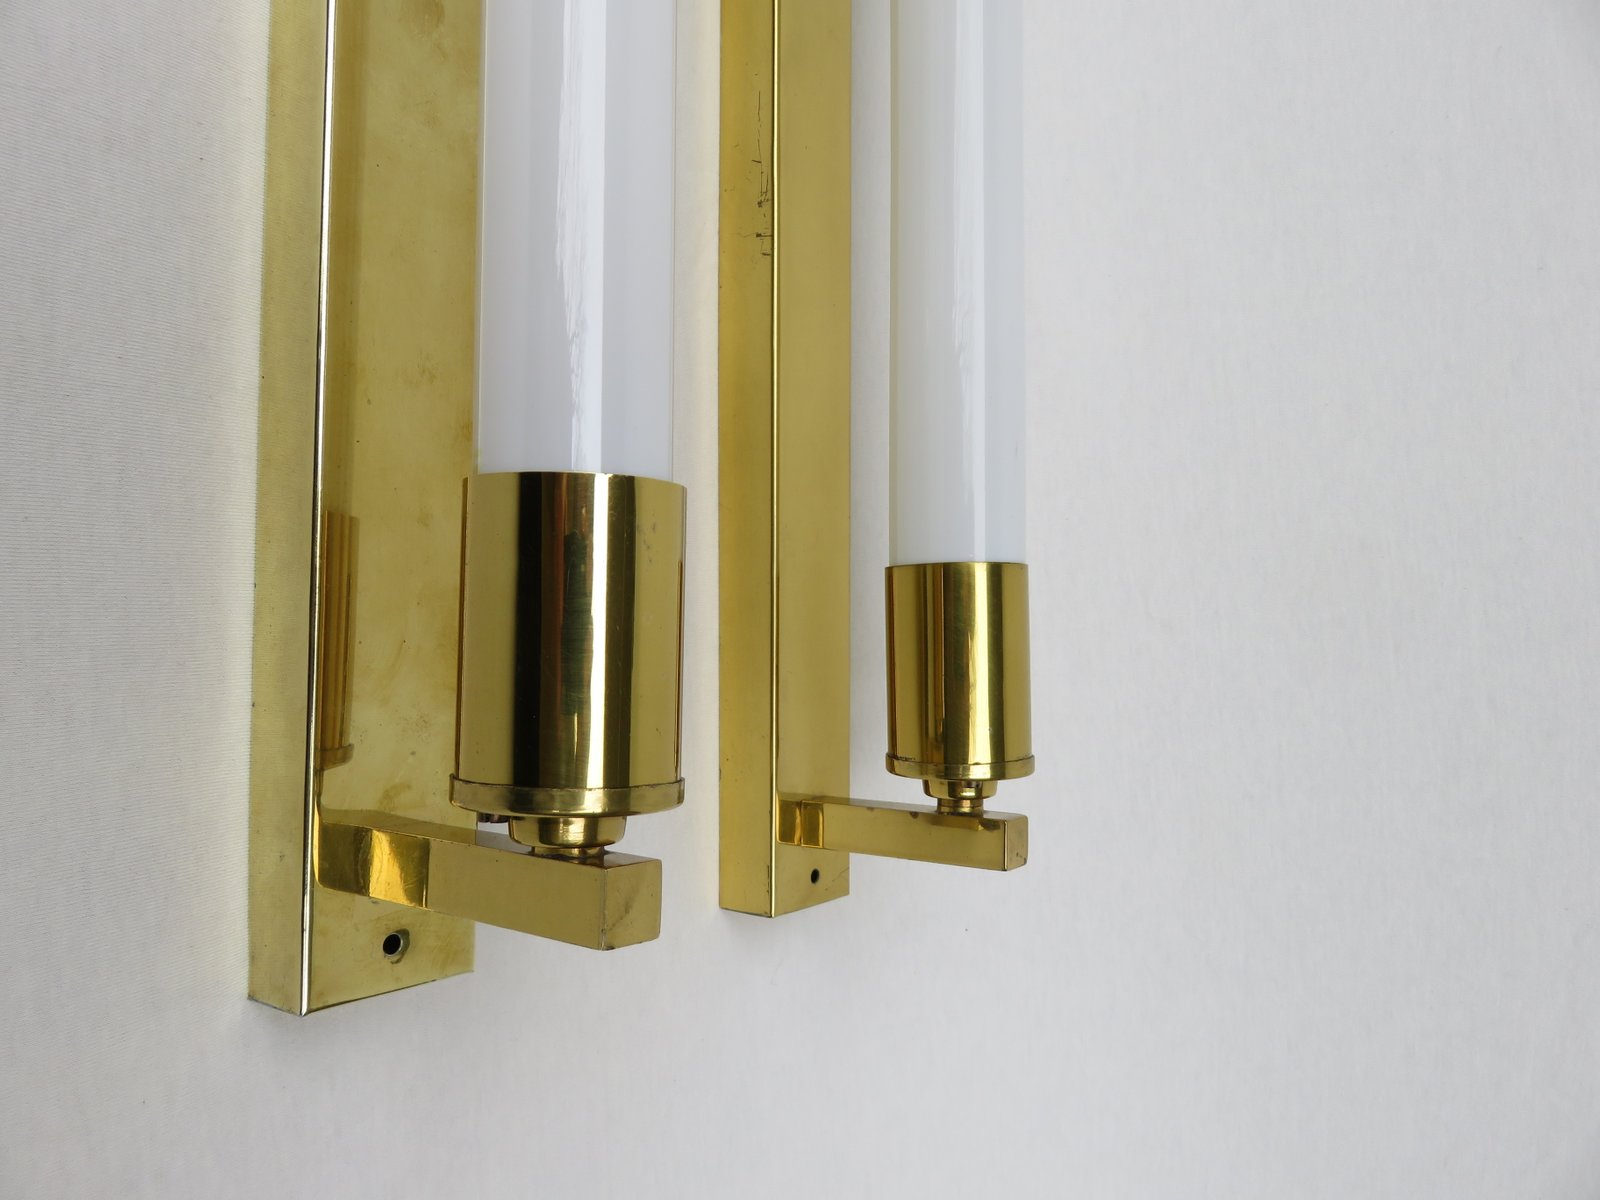 Vintage Brass Wall Lamps : Vintage Art Deco Brass Festoon Wall Lamps, Set of 2 for sale at Pamono